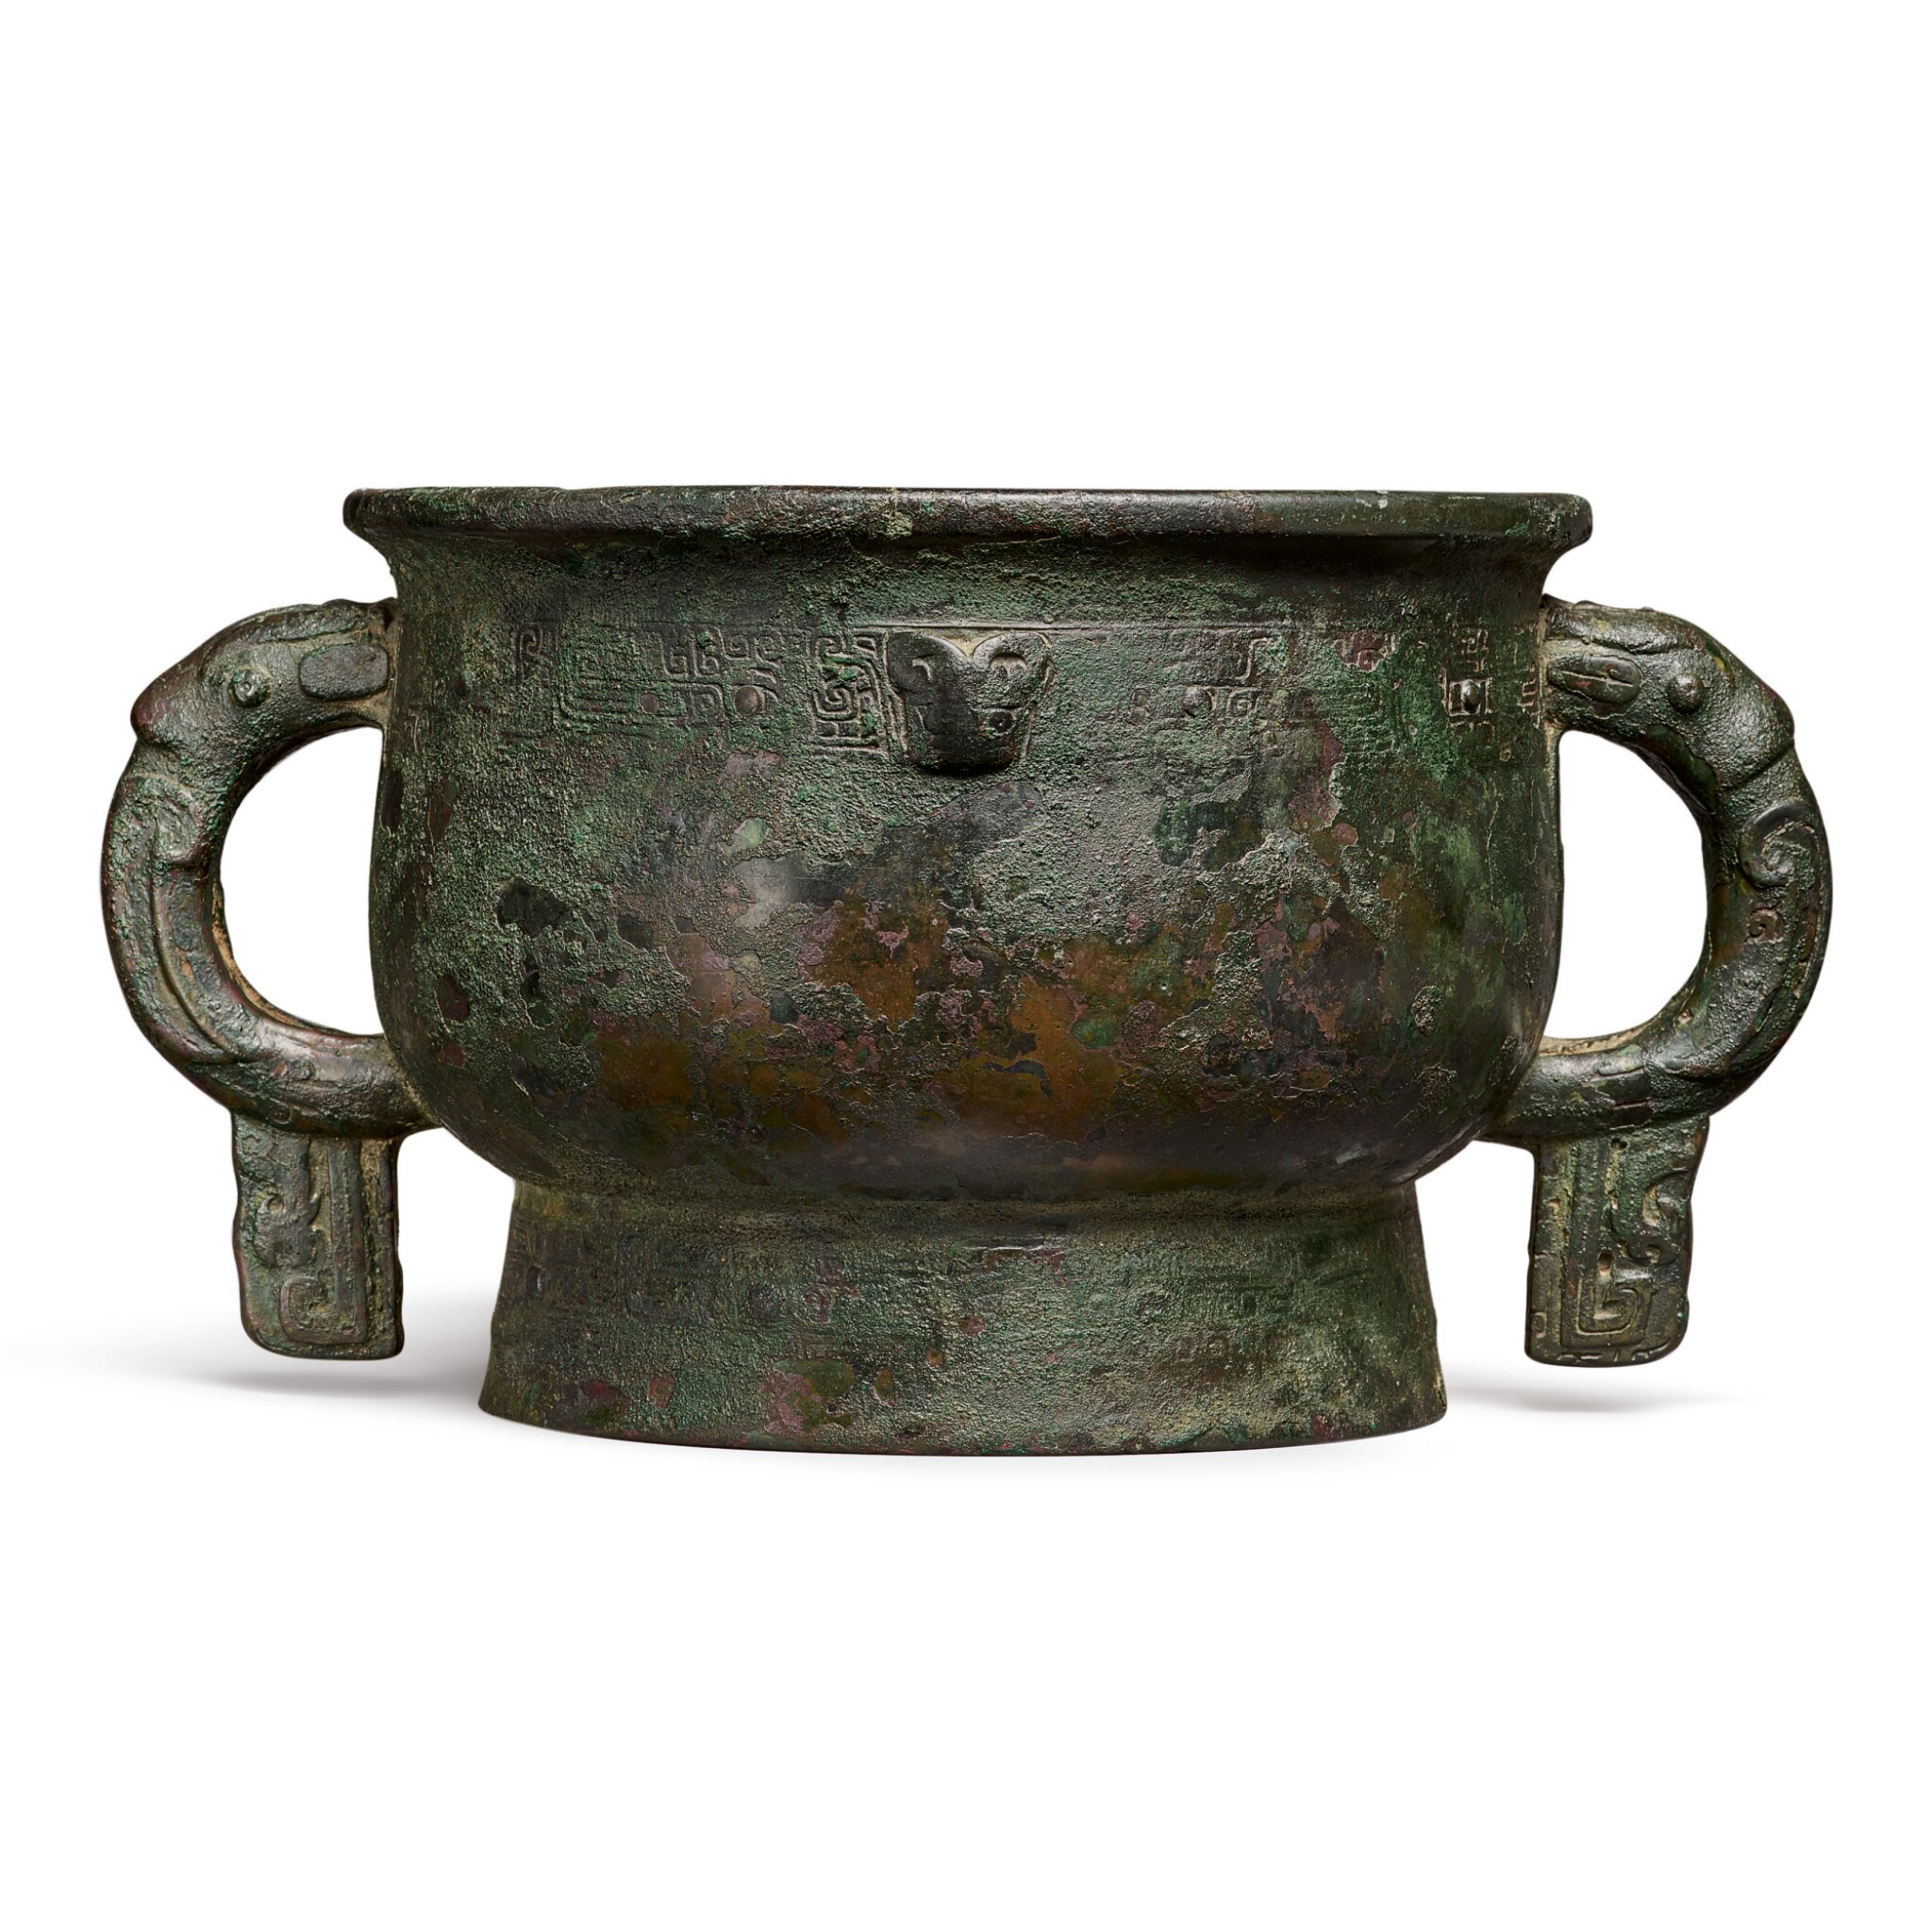 View full screen - View 1 of Lot 193. An important documentary archaic bronze ritual food vessel (Gui), Late Shang dynasty, probably c. 1072 BC | 商末 或約公元前1072年 小子□簋.